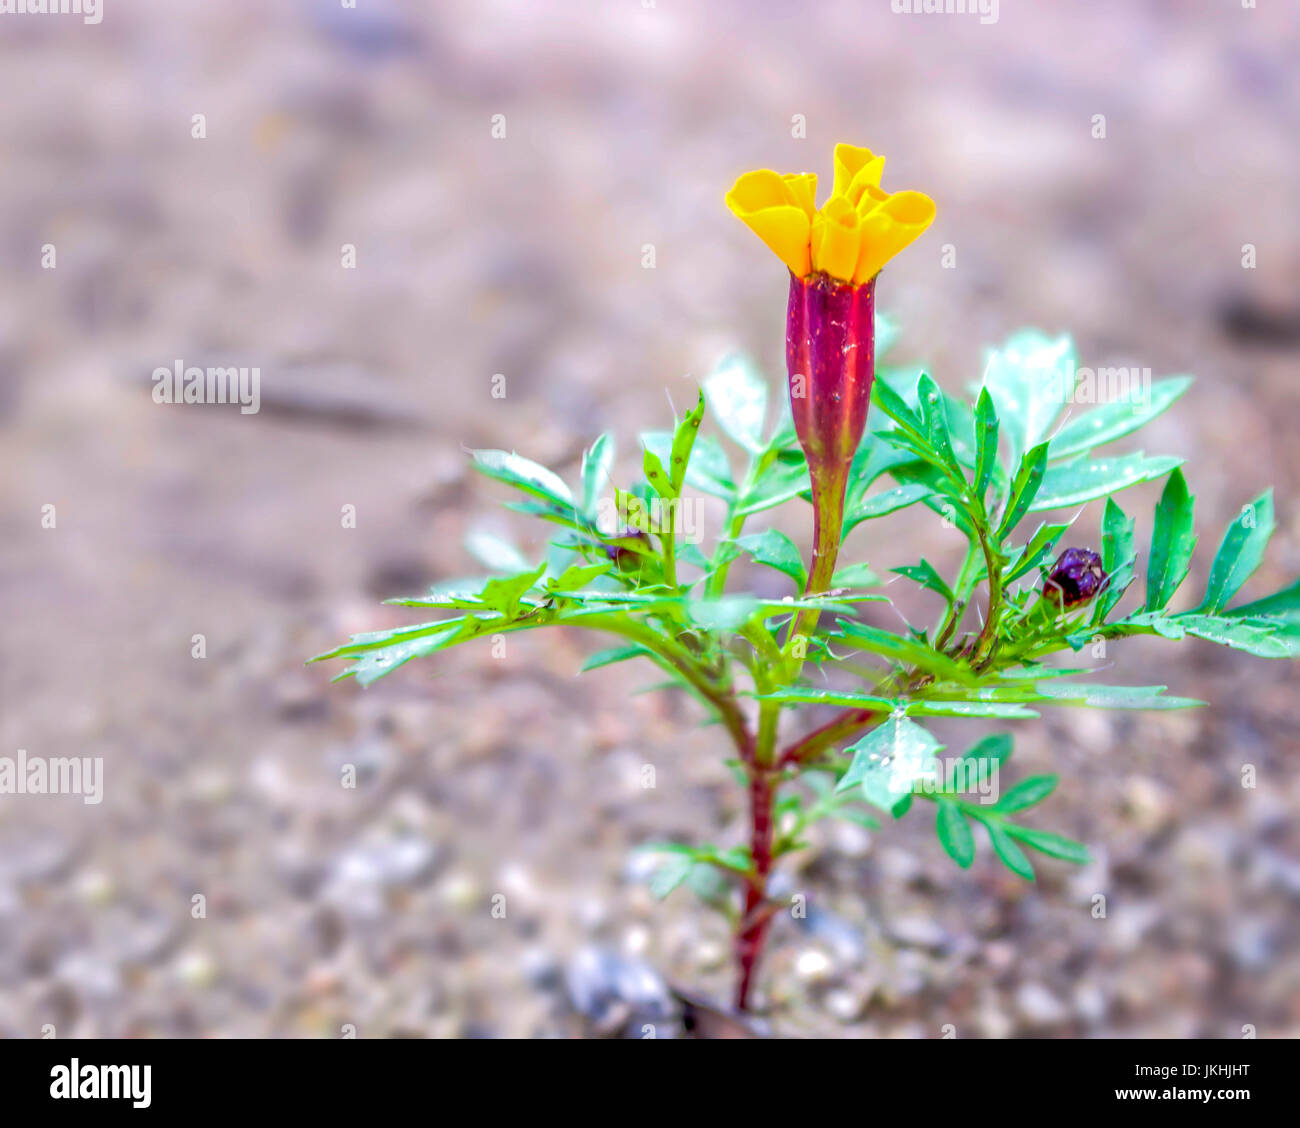 Flower with generous copy space - Stock Image